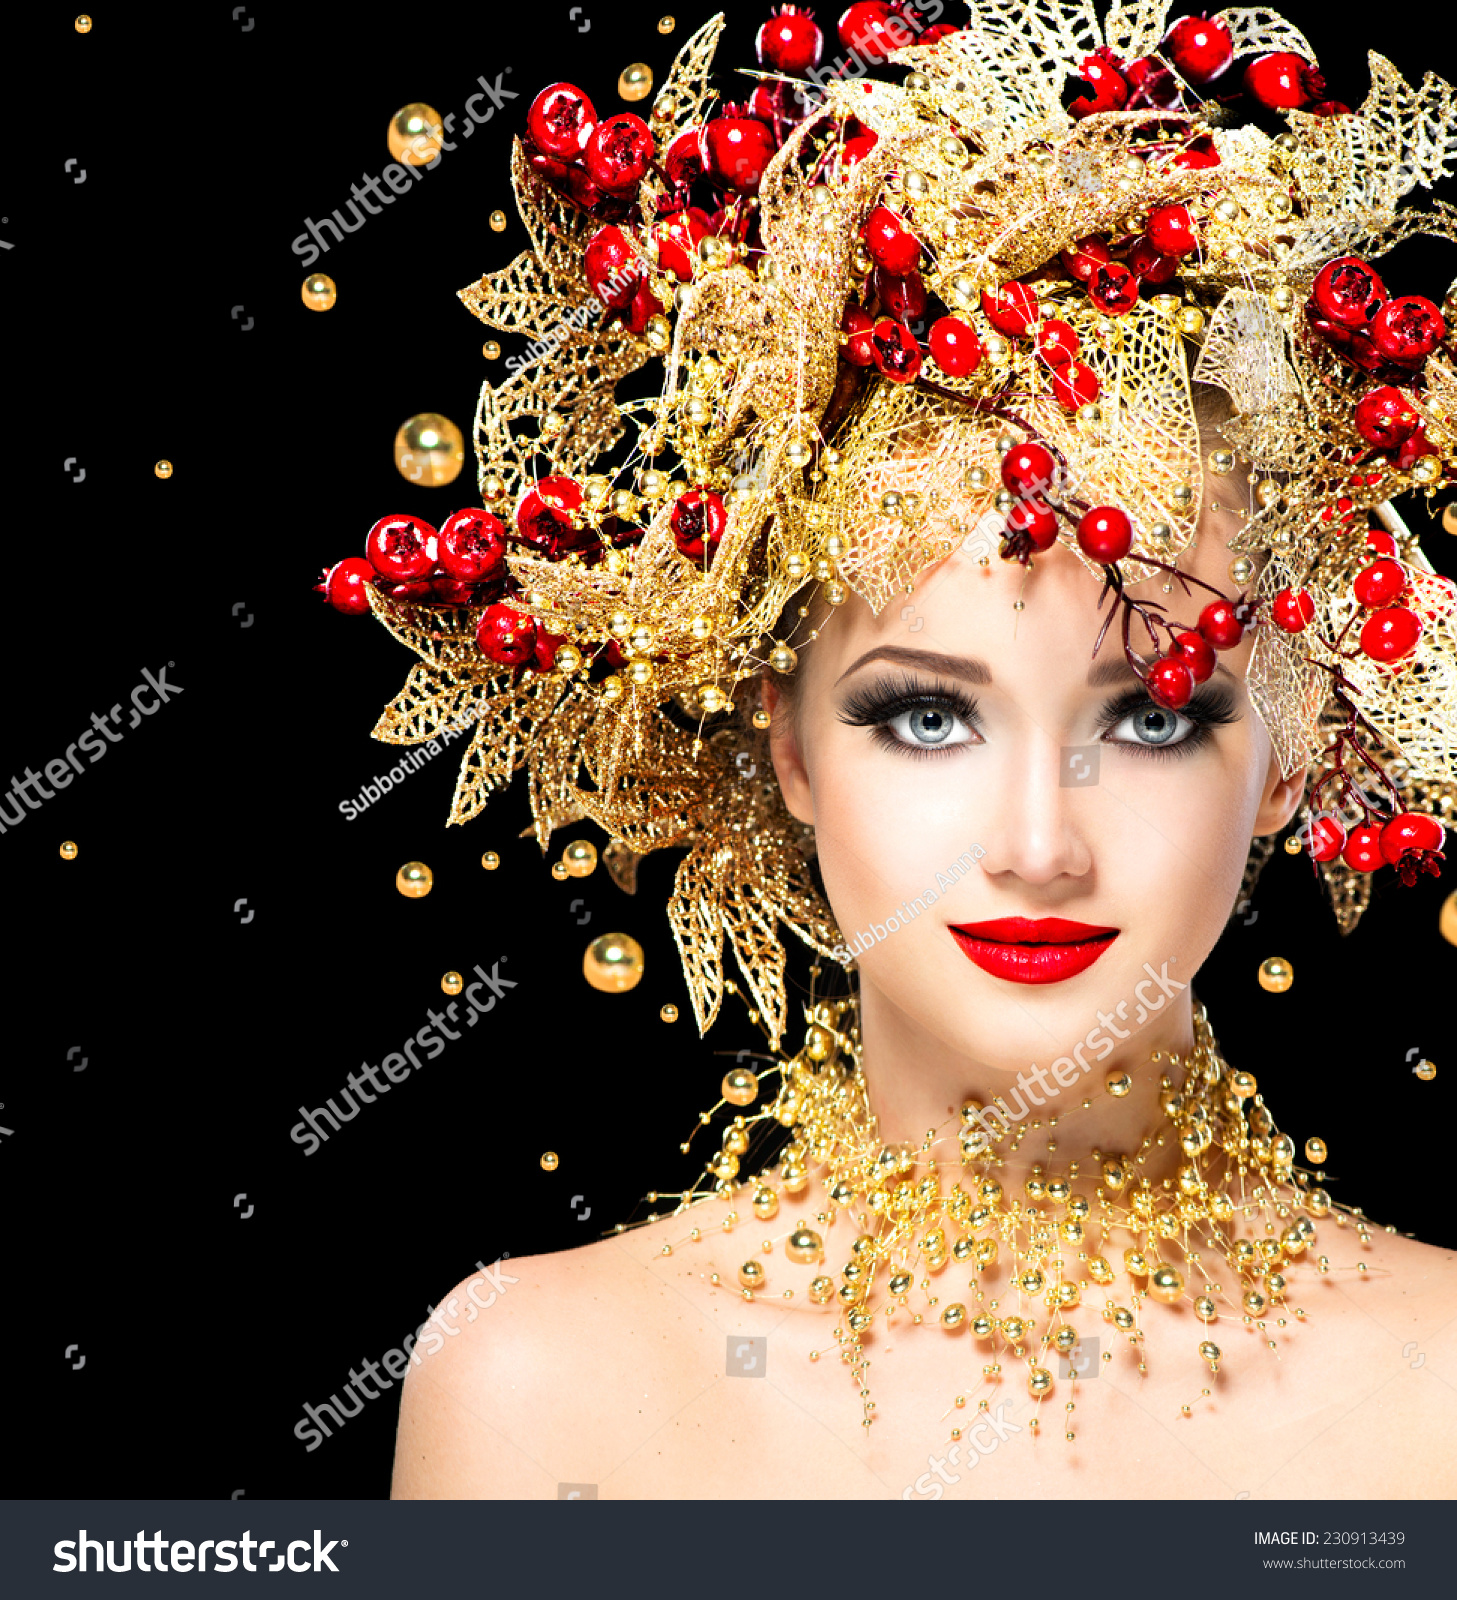 Christmas Winter Fashion Model Girl With Golden Hairstyle And Make Up Beauty Woman Beautiful